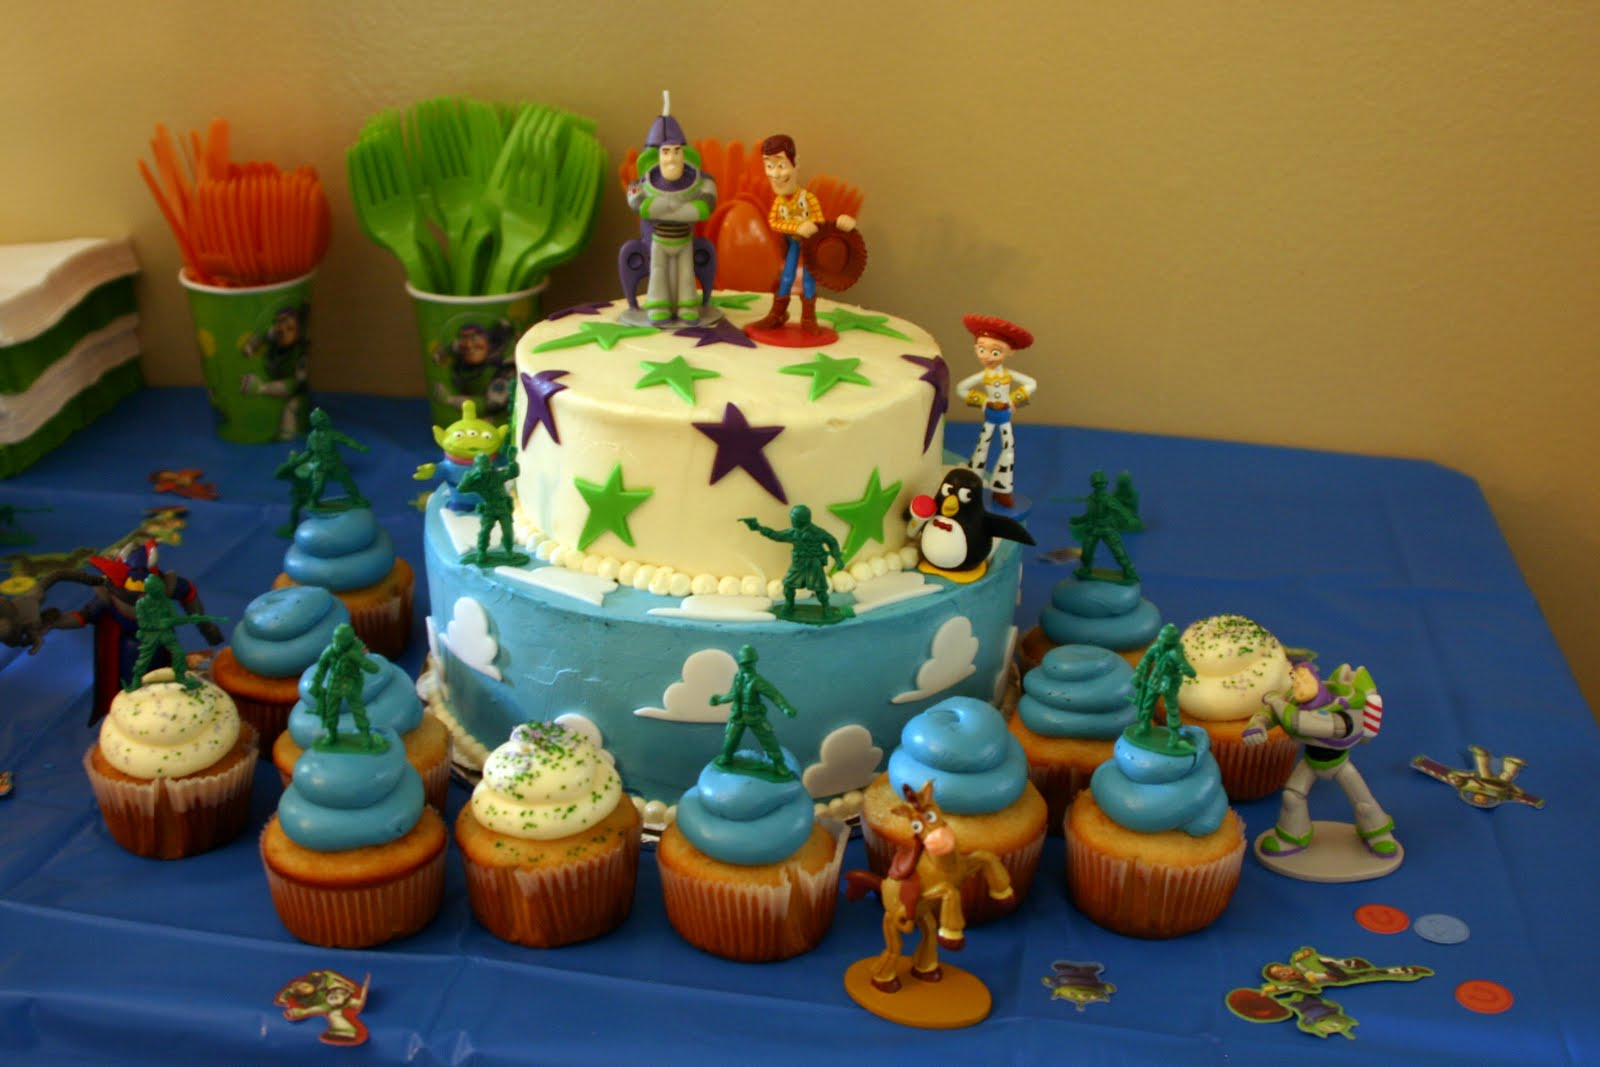 Sweet Lavender Bake Shoppe Toy Story Themed 5th Birthday Cake